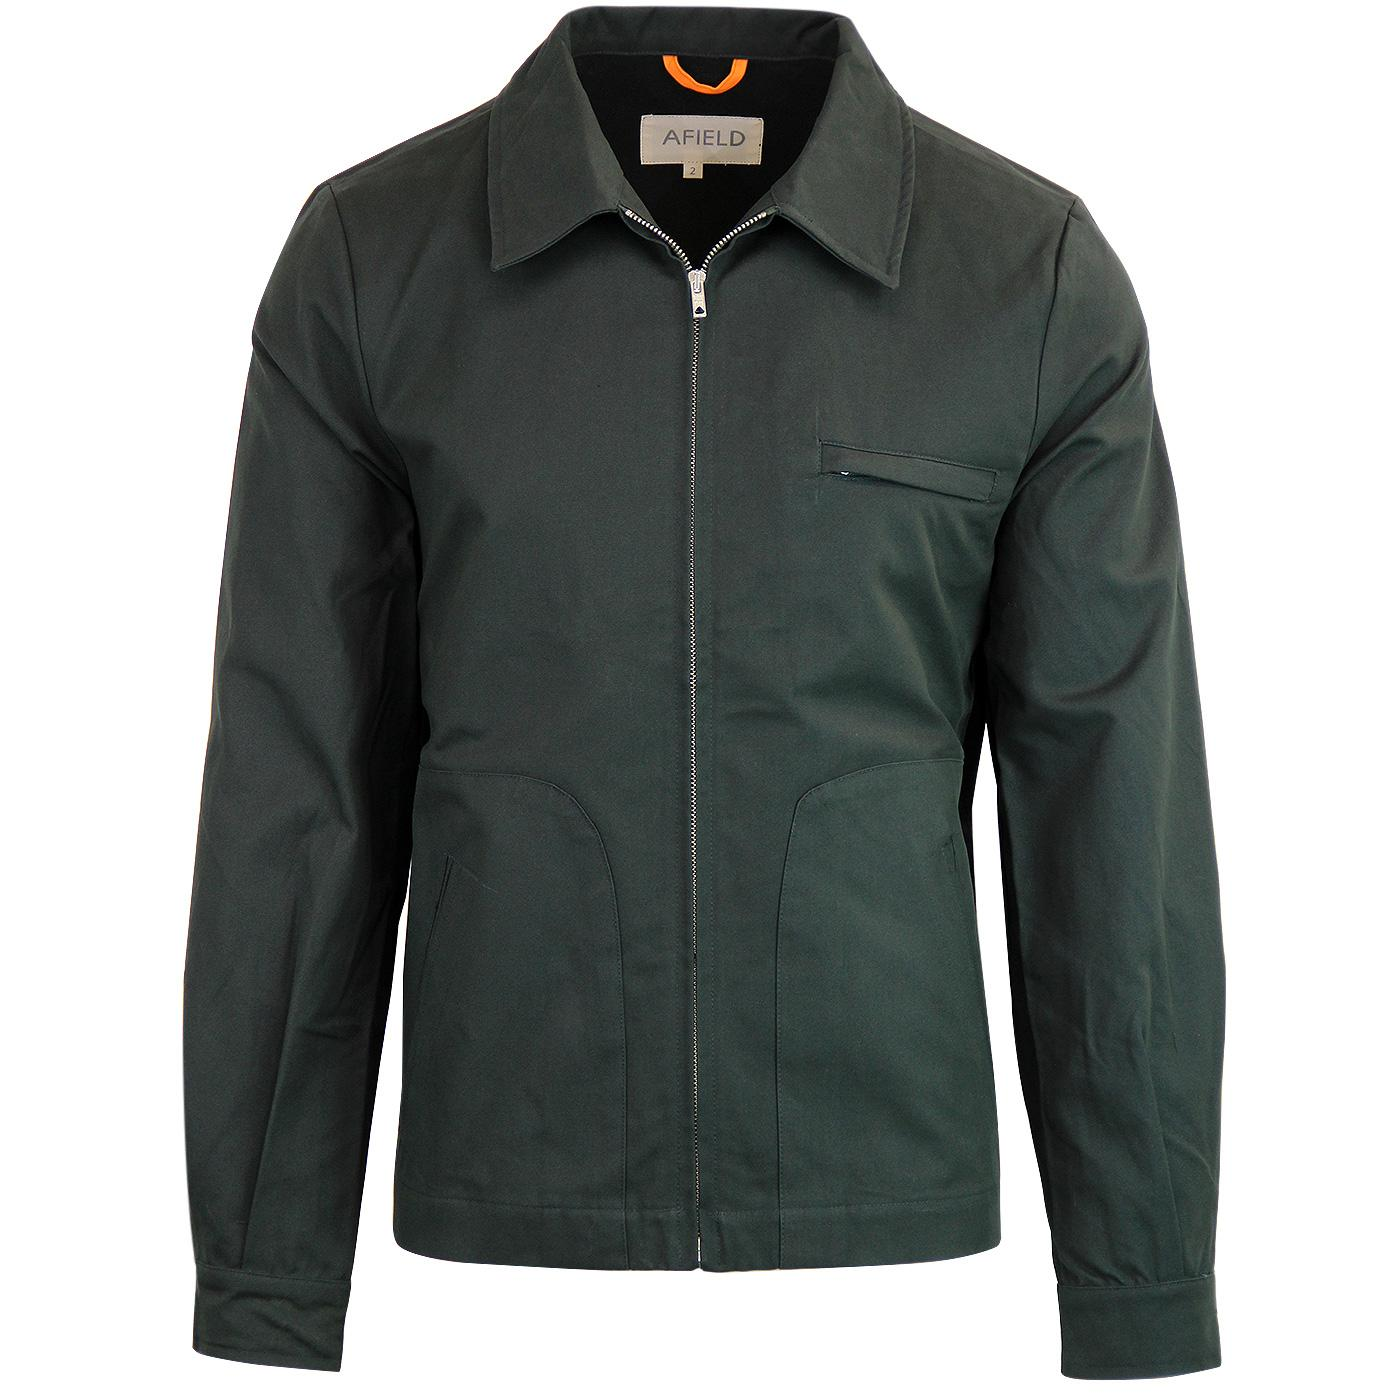 Ernest AFIELD Mens Retro Mod Military Jacket GREEN